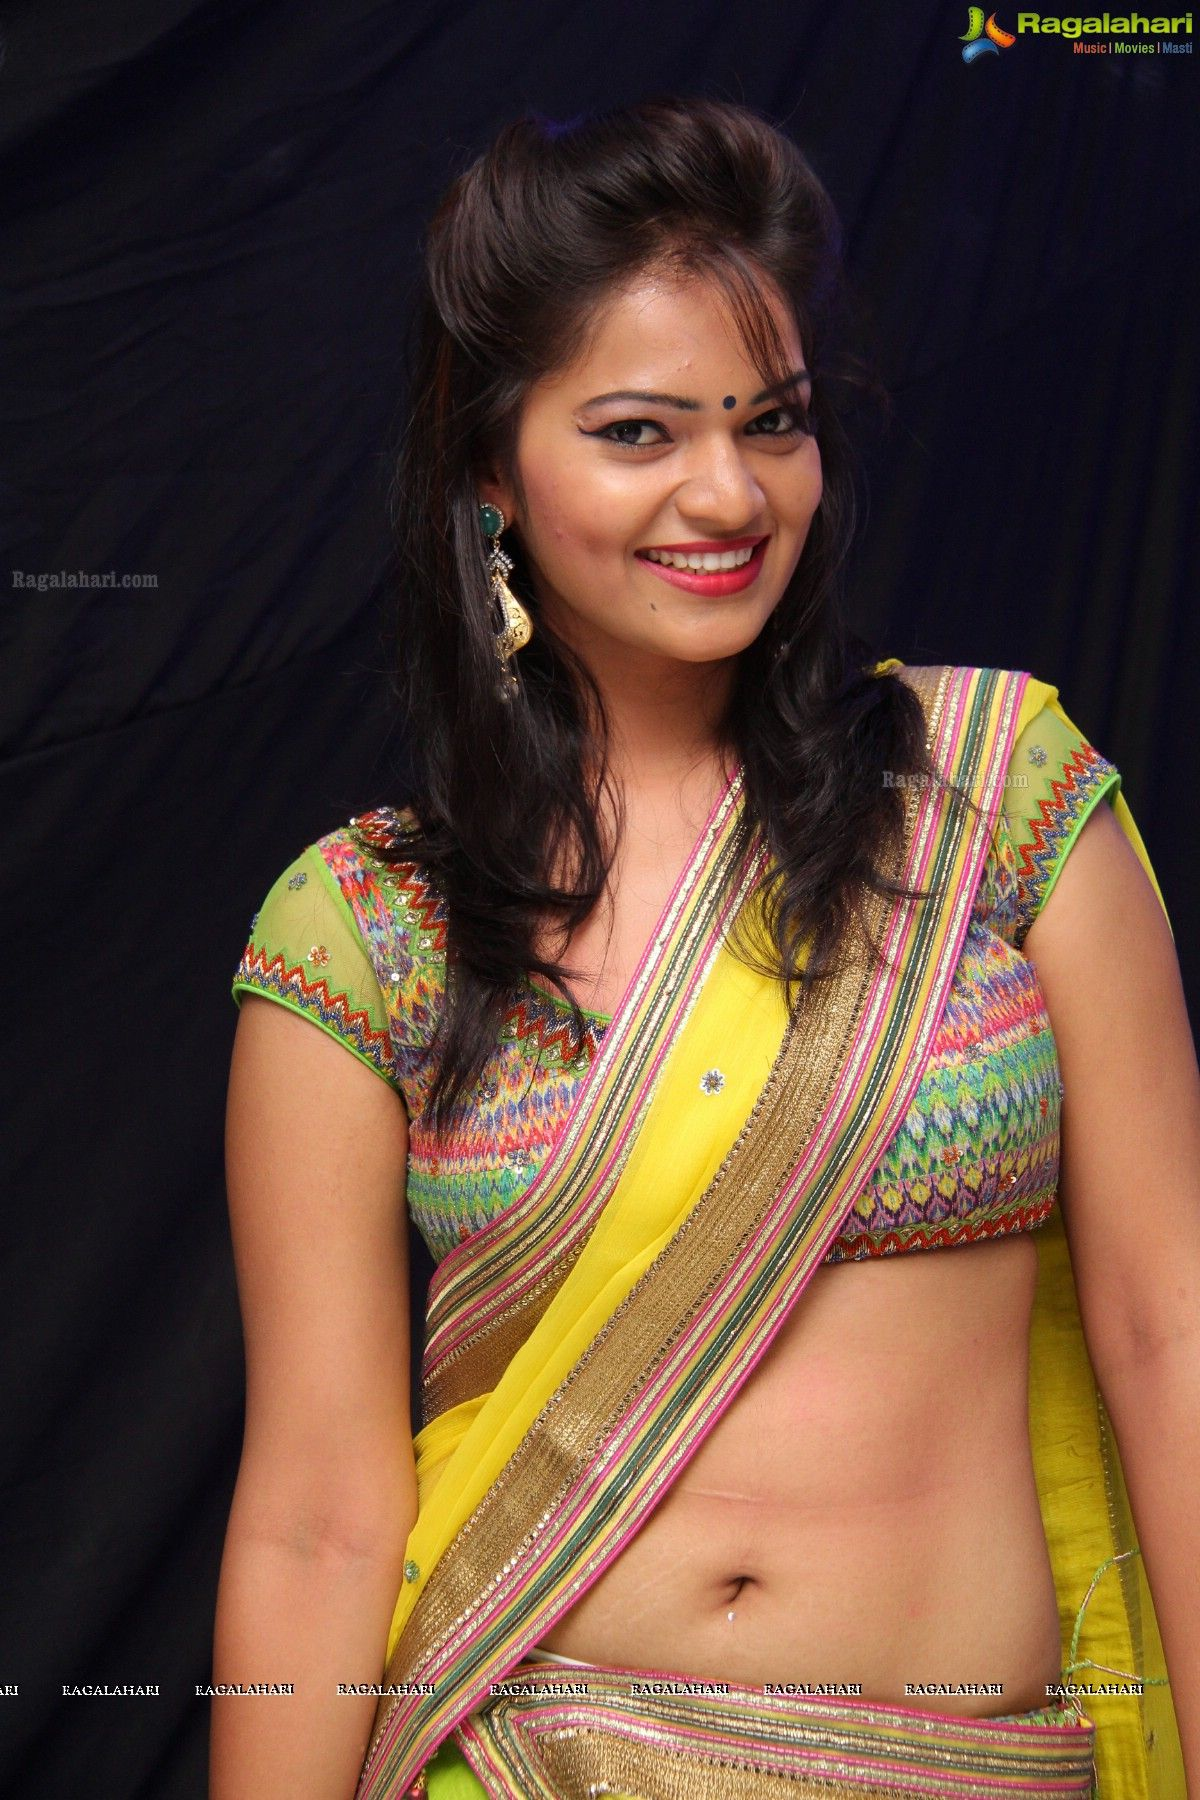 ashwini image 47 | tollywood actress hot images,stills, heroines